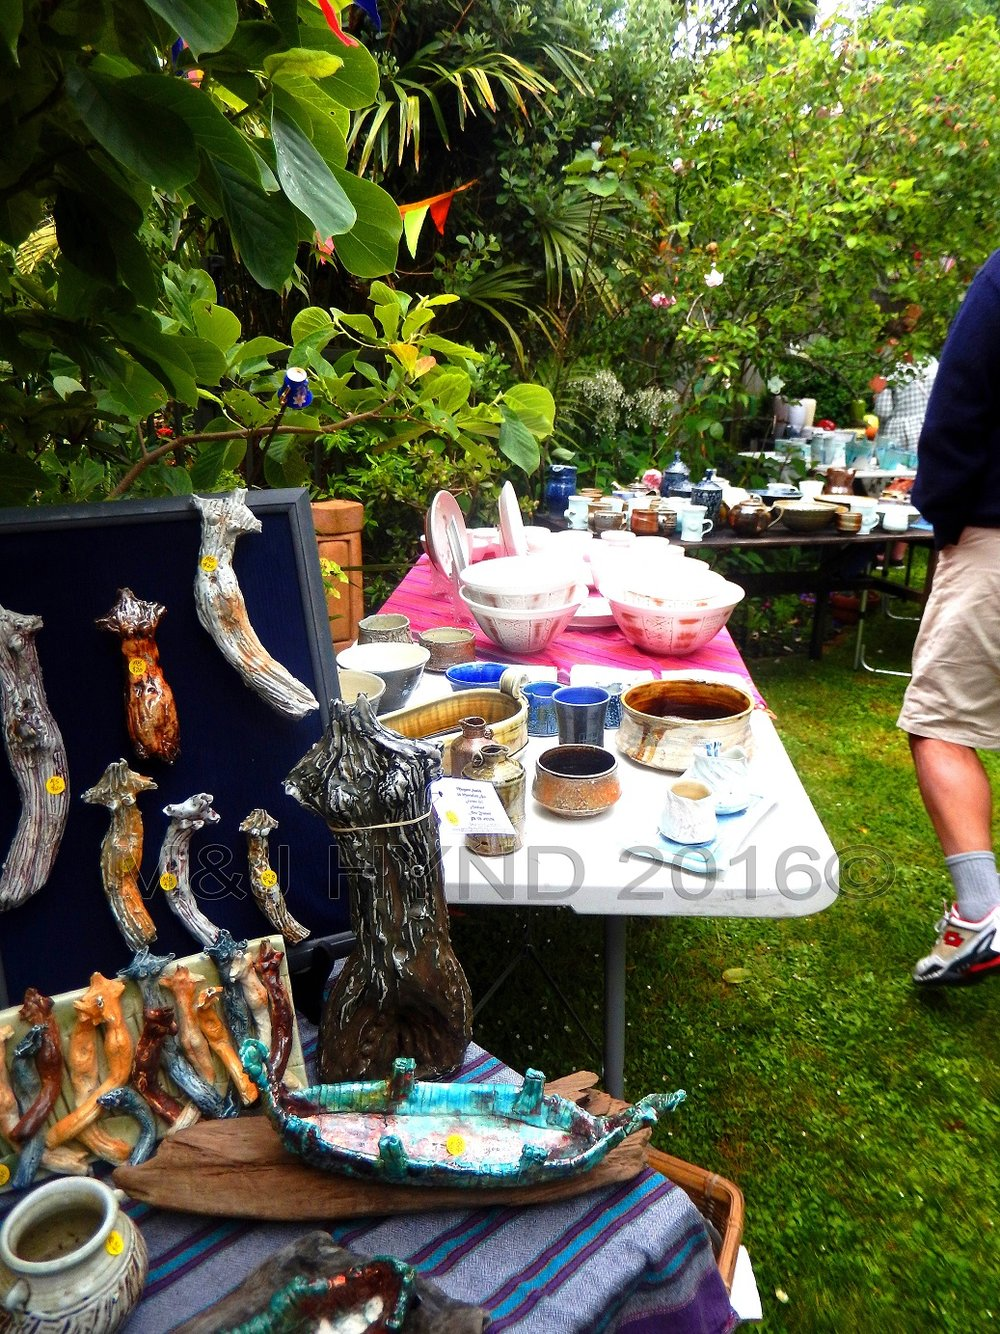 Pottery for sale, Auckland, NZ